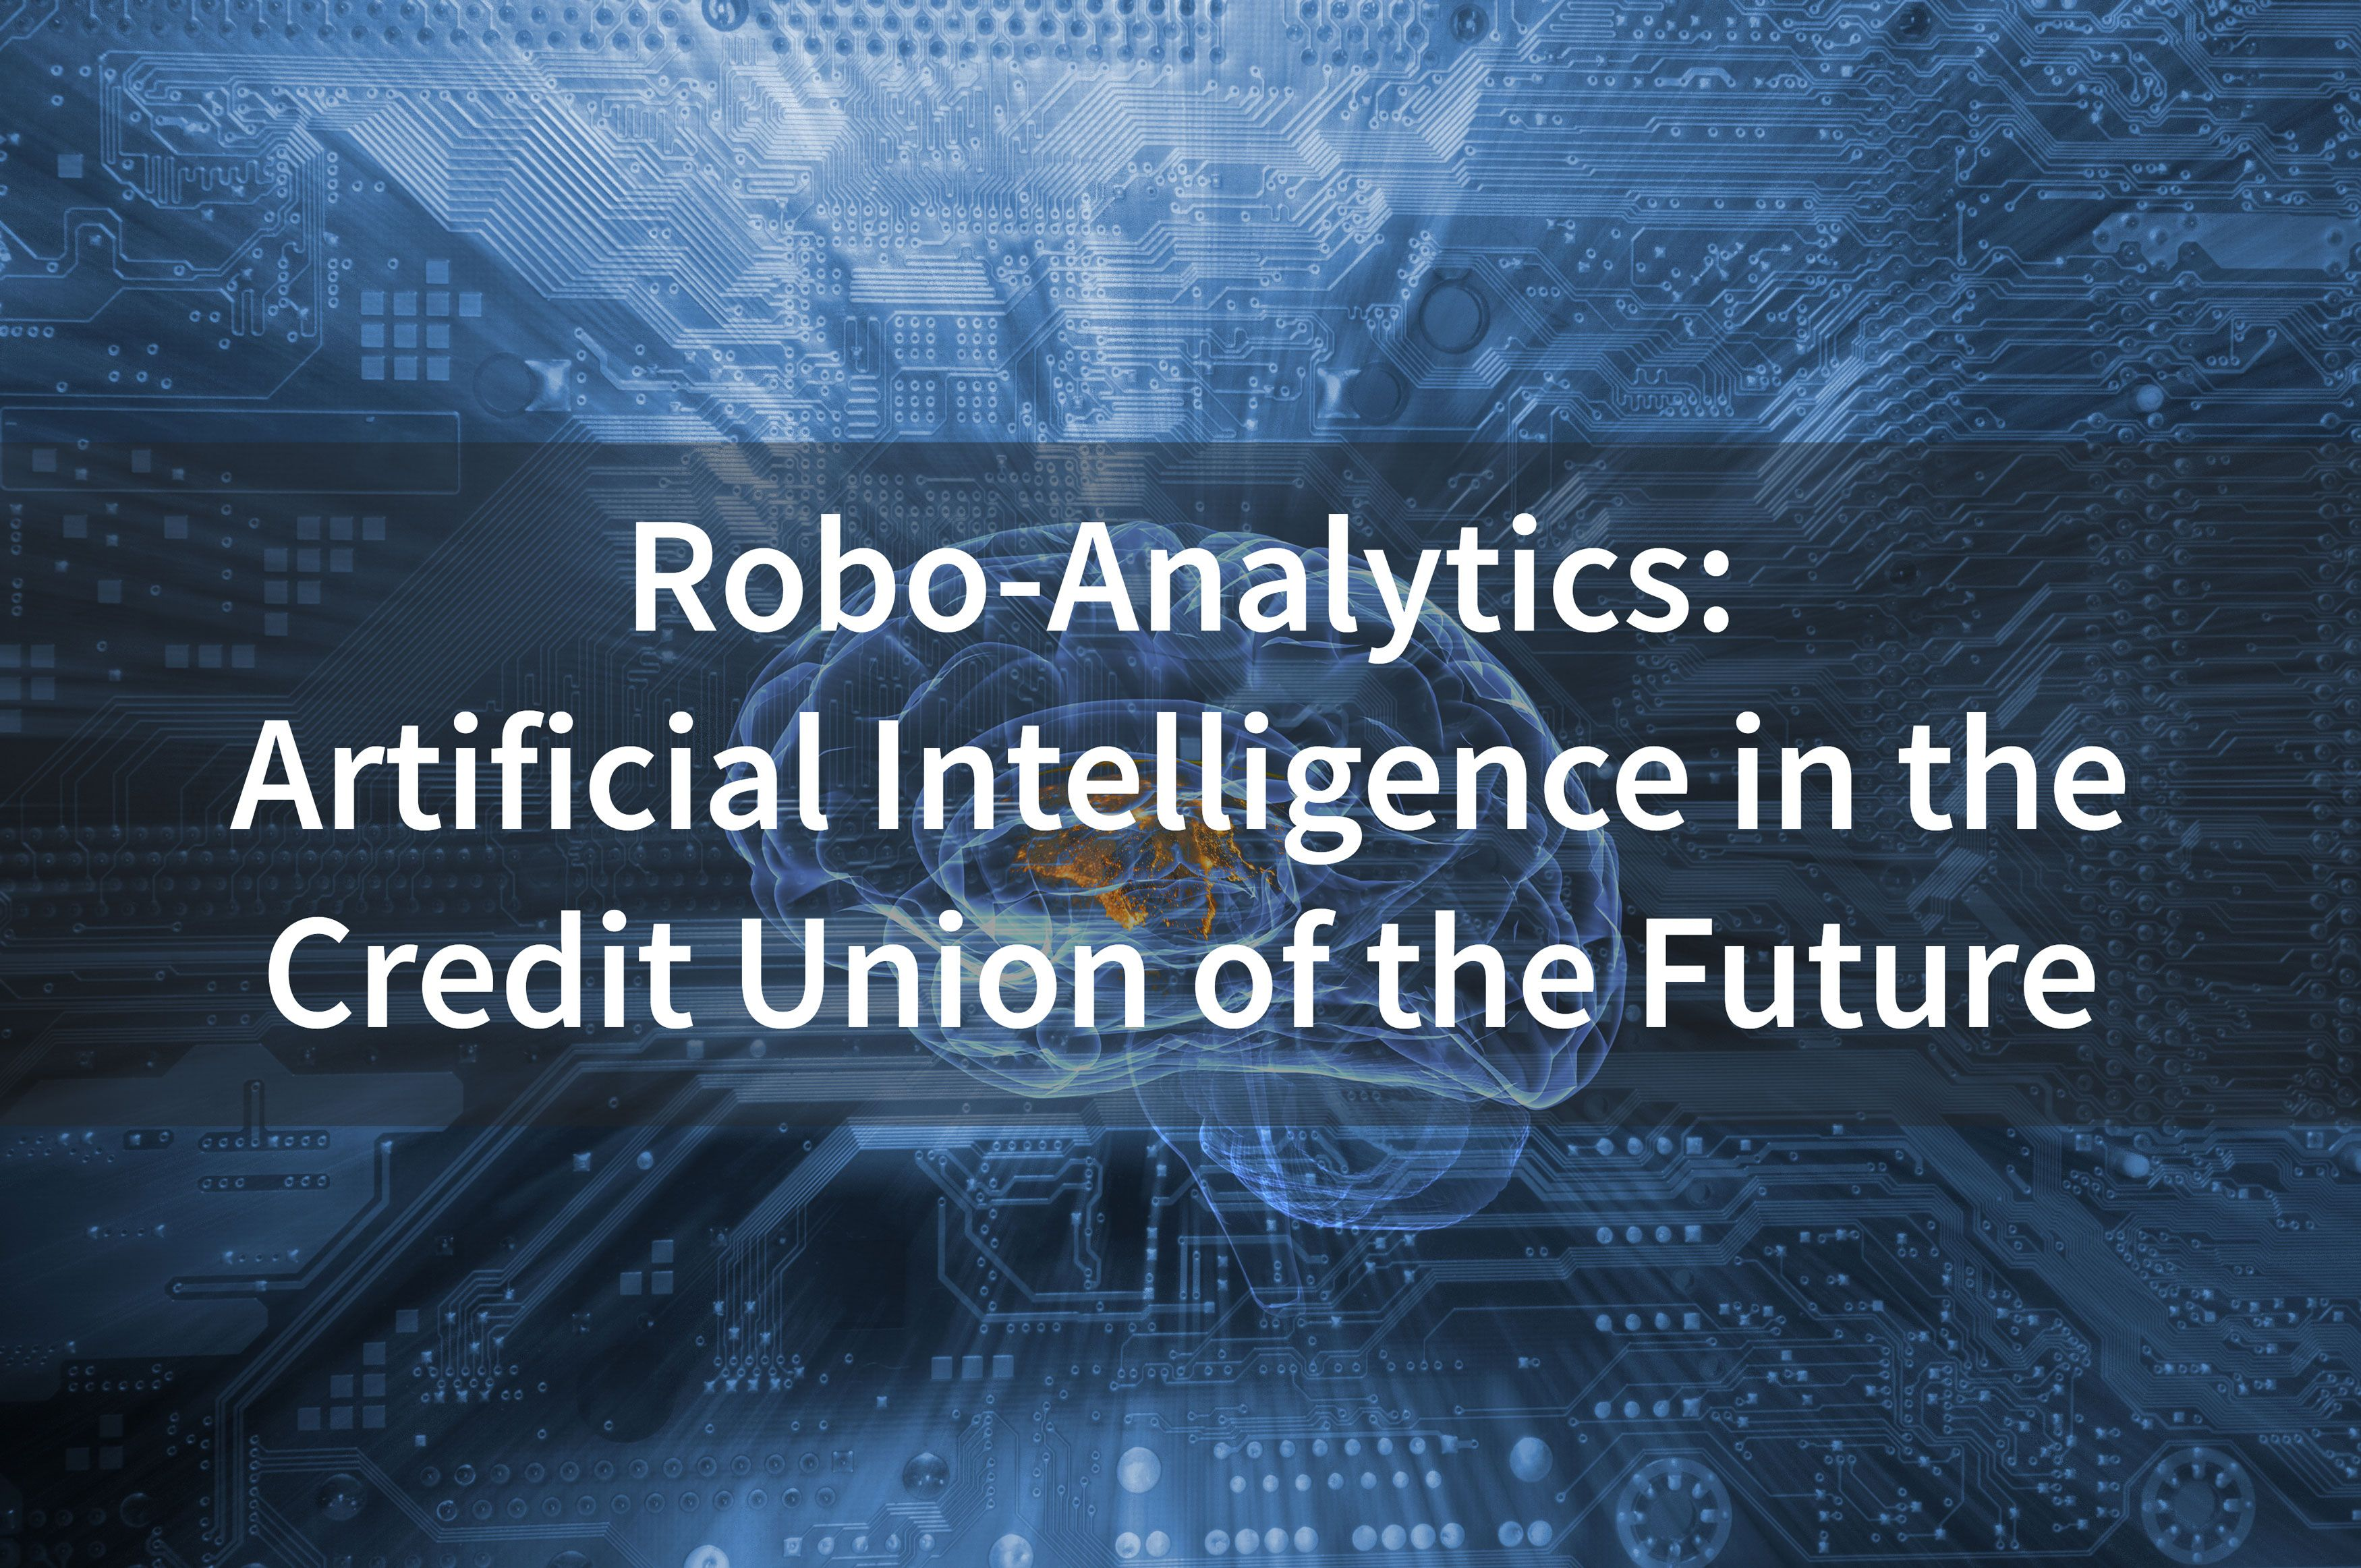 General Electric Is Making A Bold Transformation Into A Digital Industrial Company Ge Has Taken Important Steps Credit Union Analytics Industrial Companies